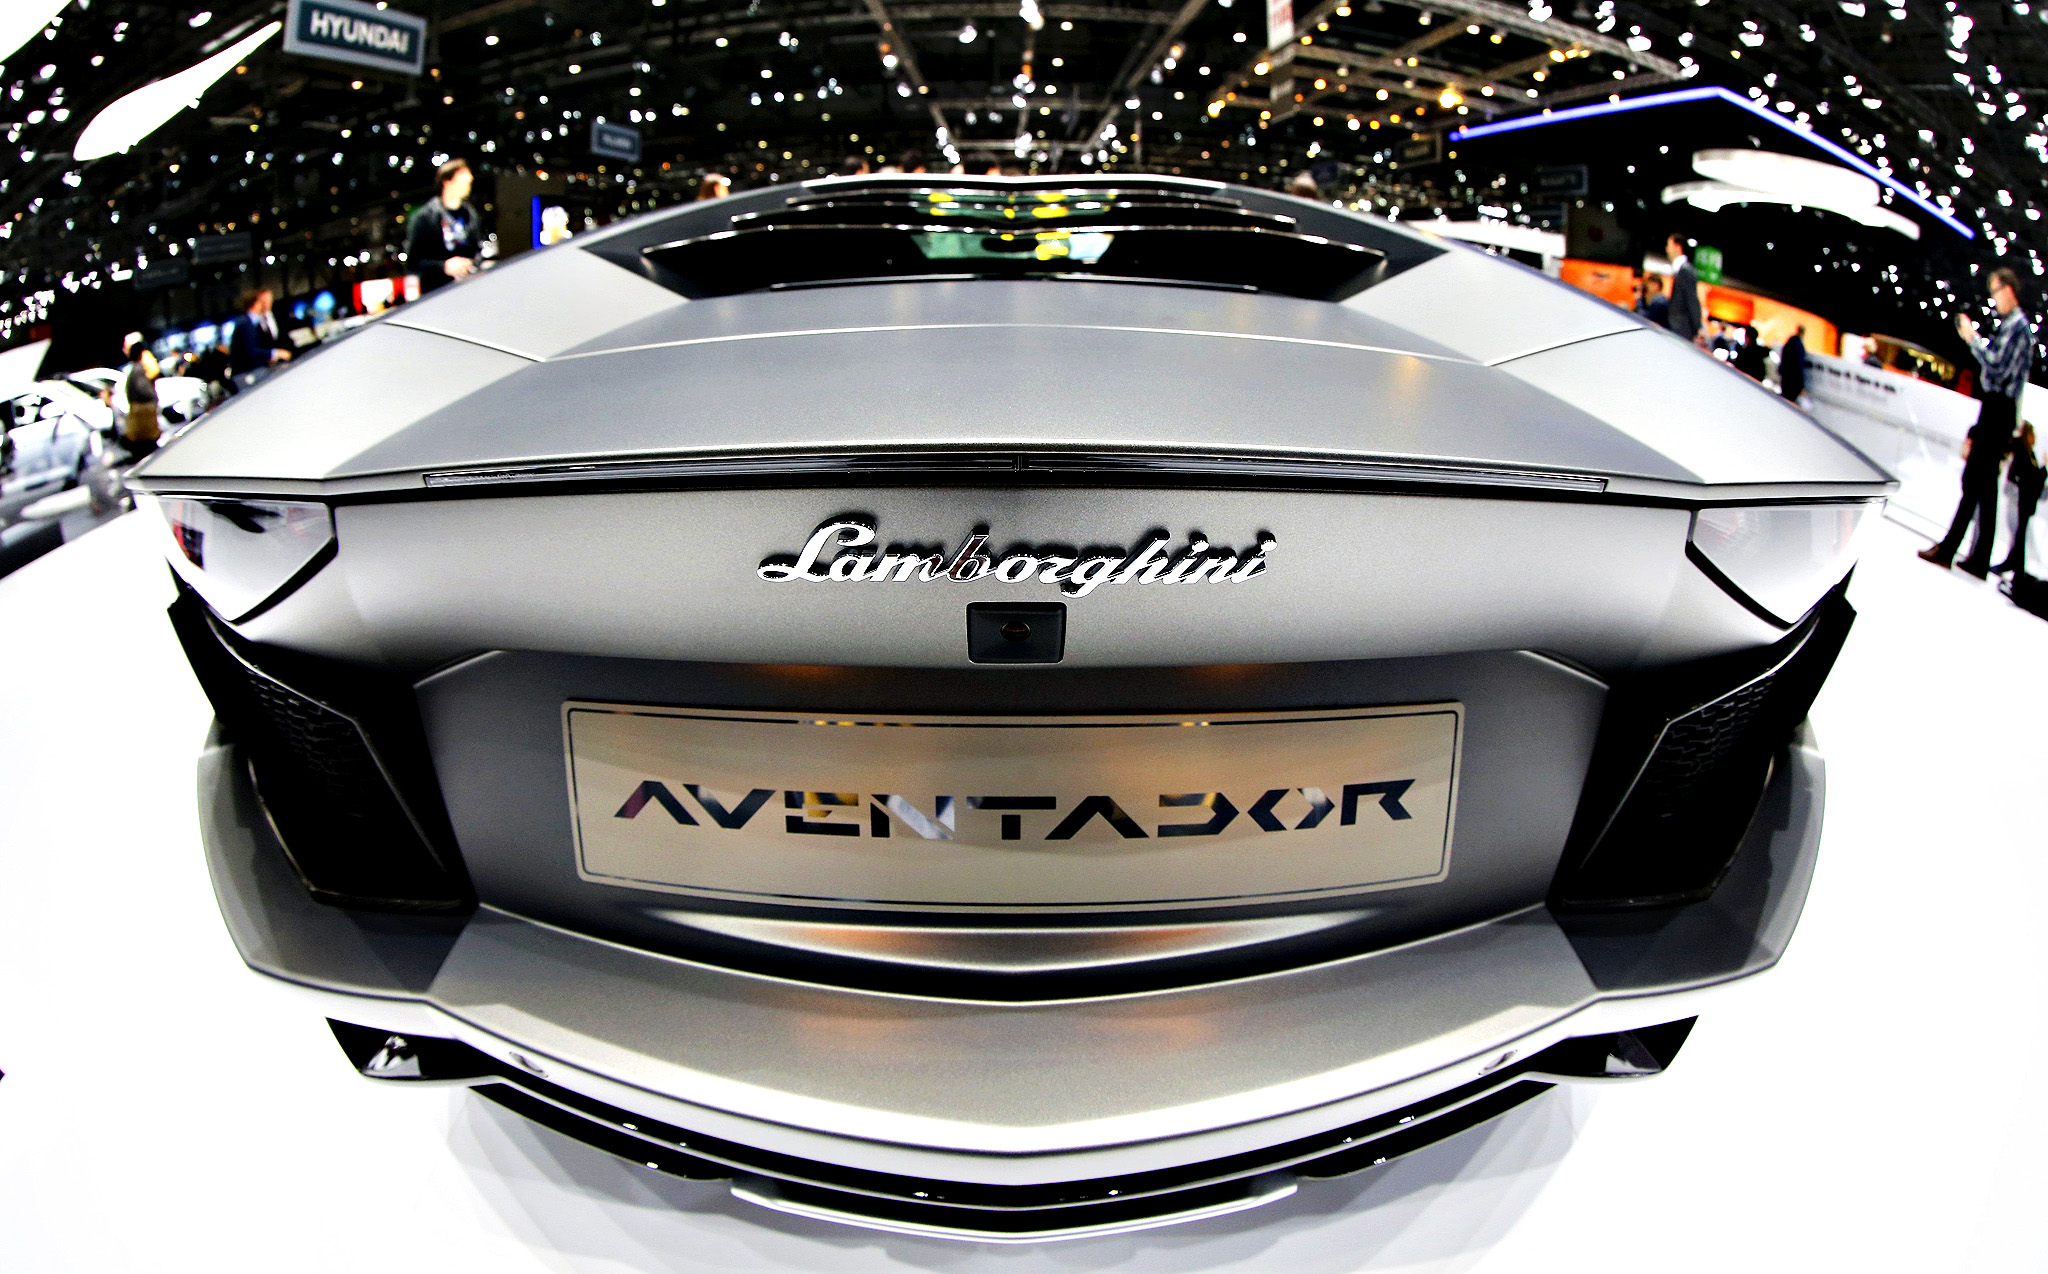 The rear of Lamborghini Aventador is pictured during the media day ahead of the 84th Geneva Motor Show at the Palexpo Arena in Geneva March 5, 2014. The Geneva Motor Show will run from March 6 to 16.